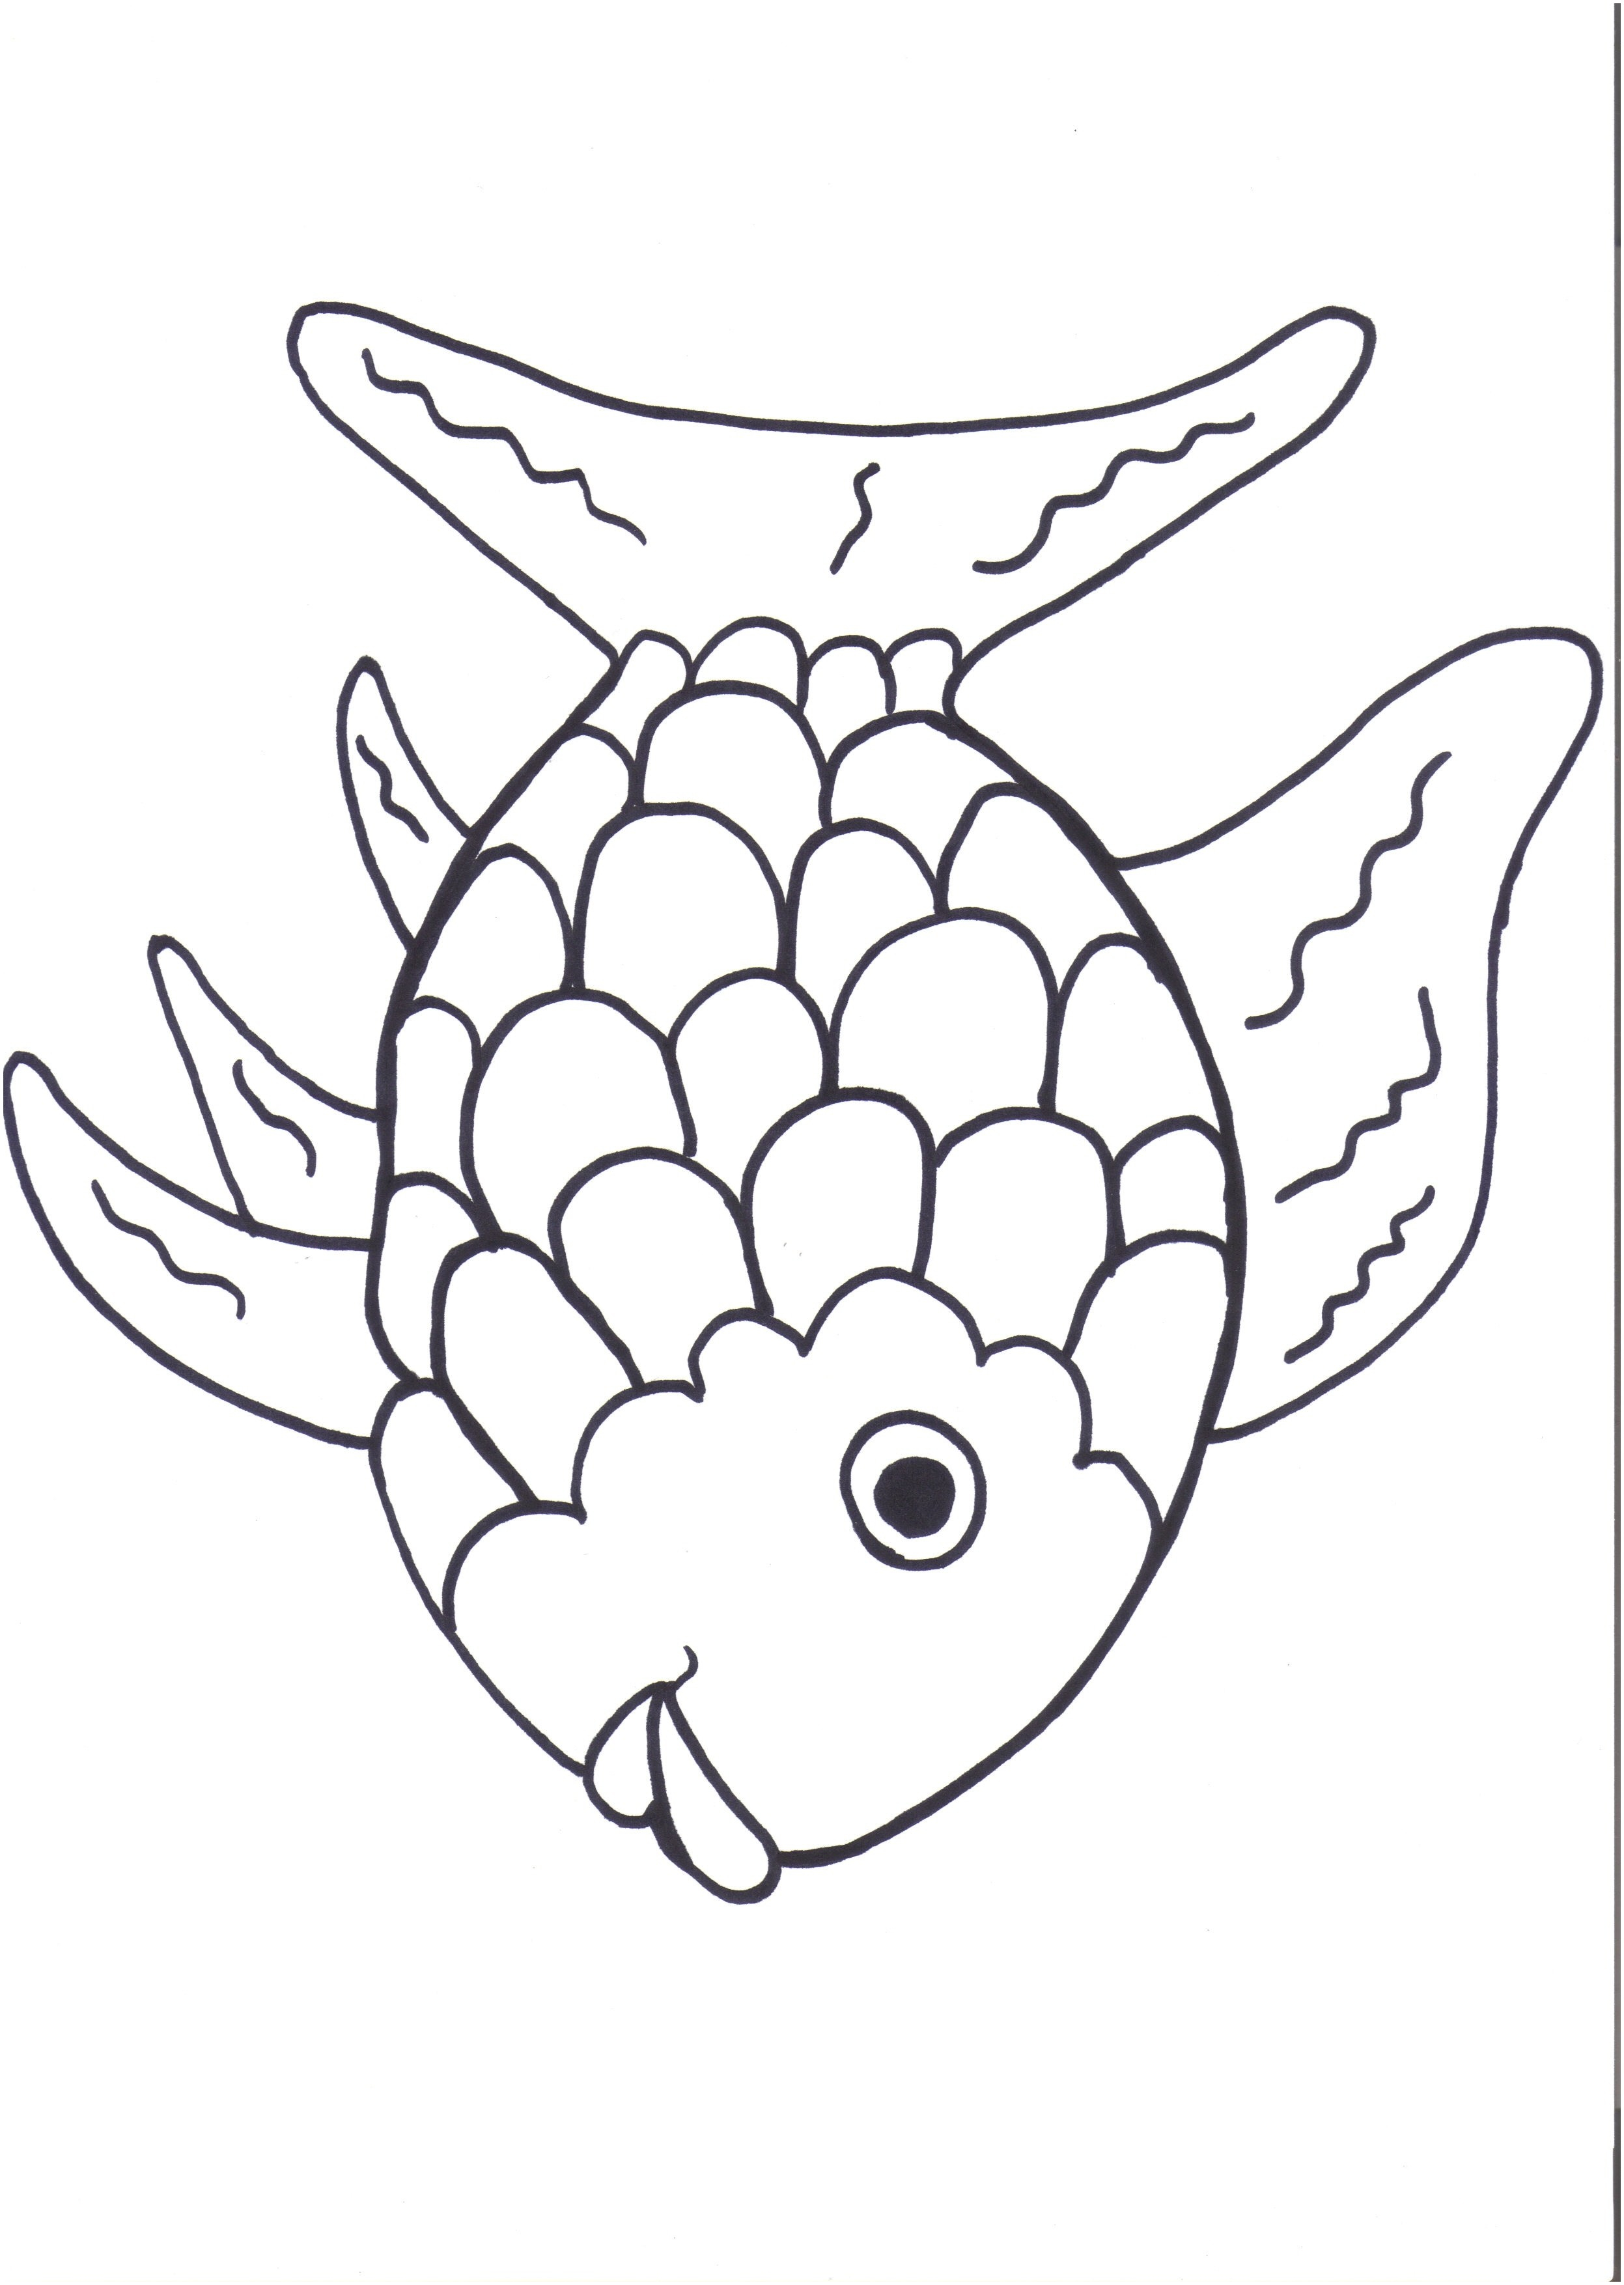 Teddy Bear Coloring Pages  Printable 14s - Free For kids